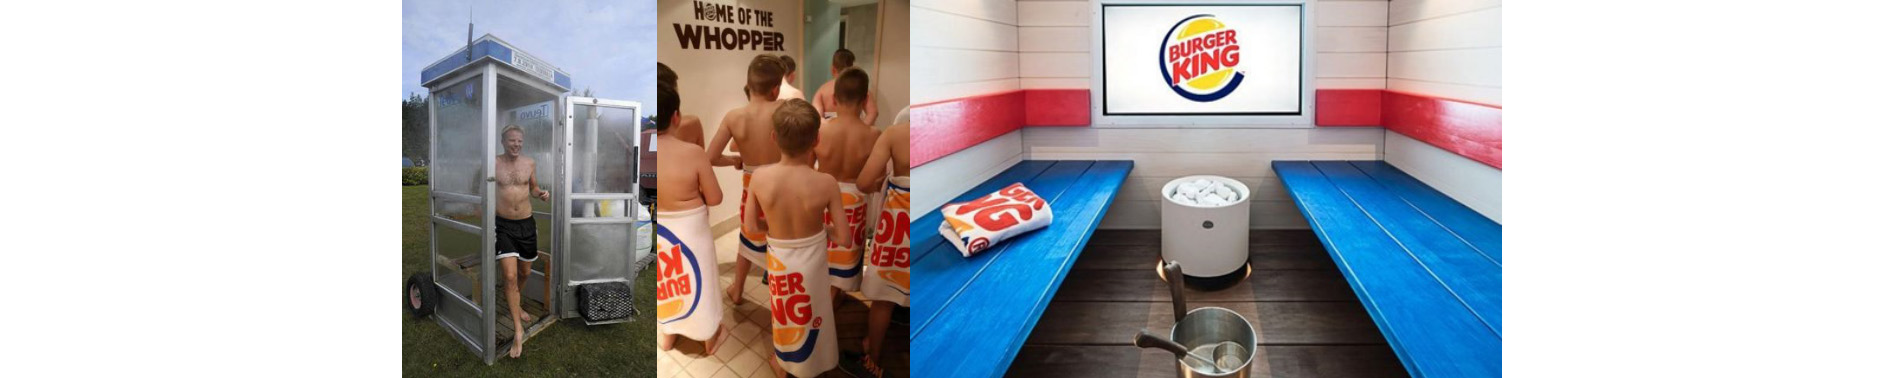 sauna in burgerking